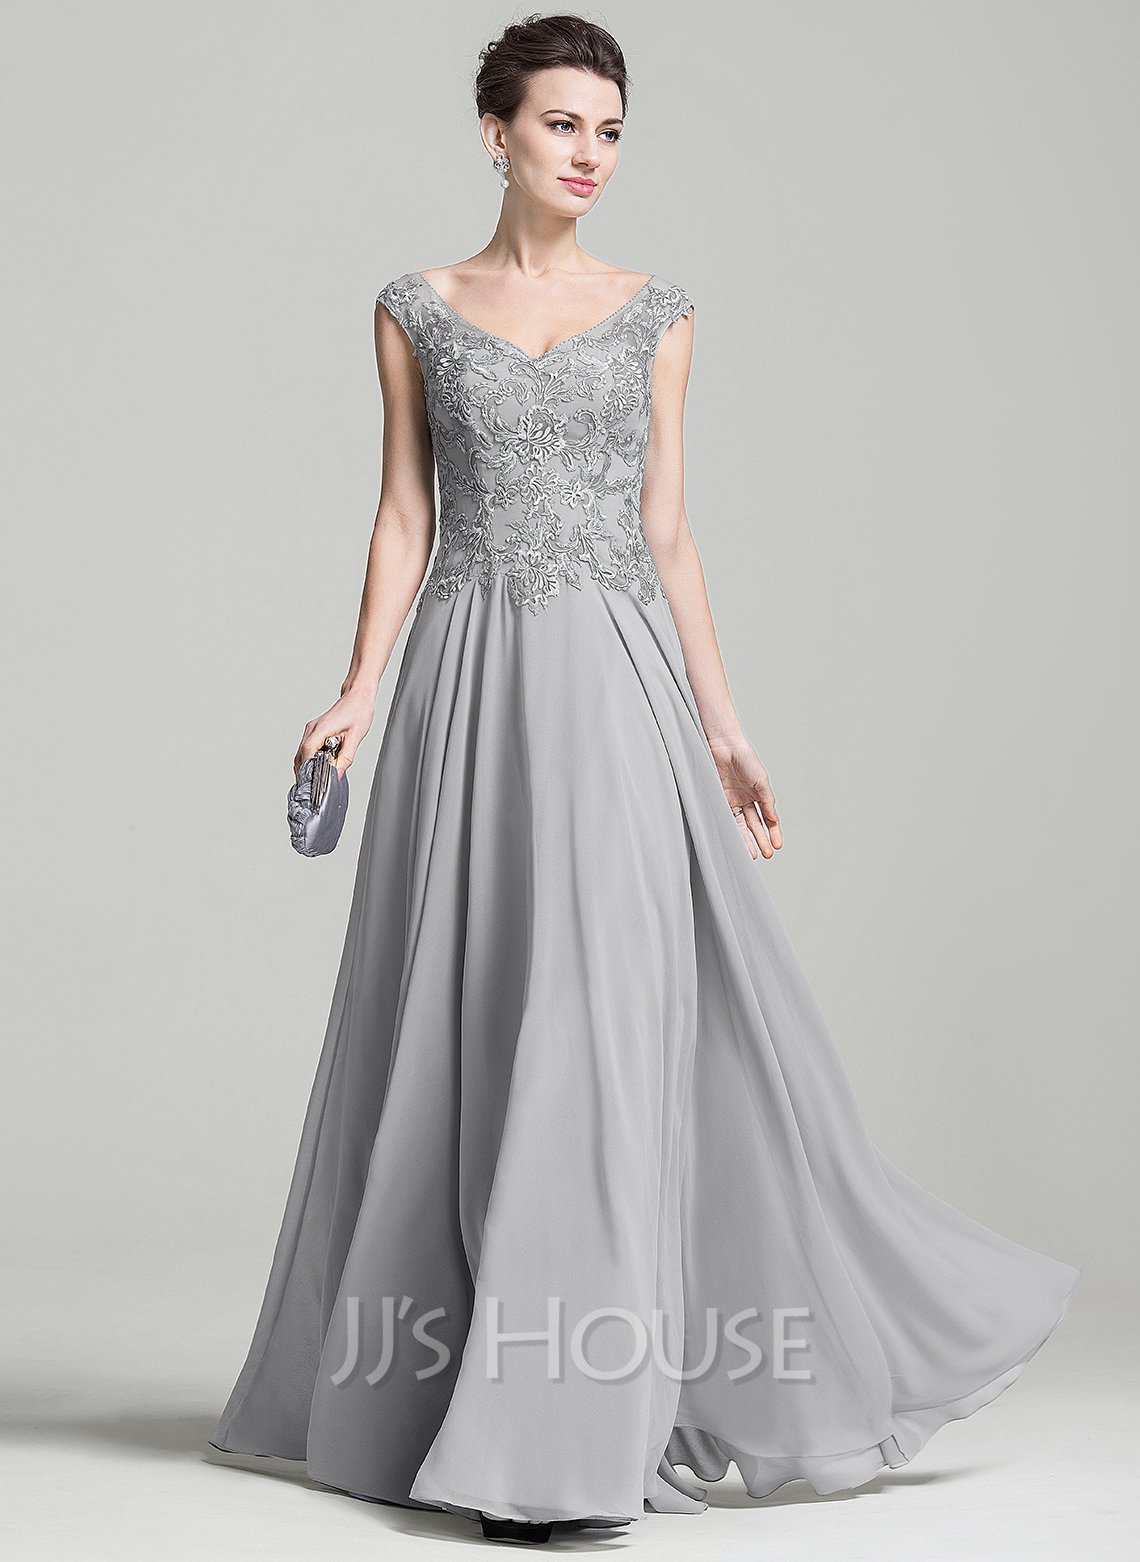 a3e2bb3da6e V-neck Floor-Length Chiffon Mother of the Bride Dress With Appliques Lace.  Loading zoom